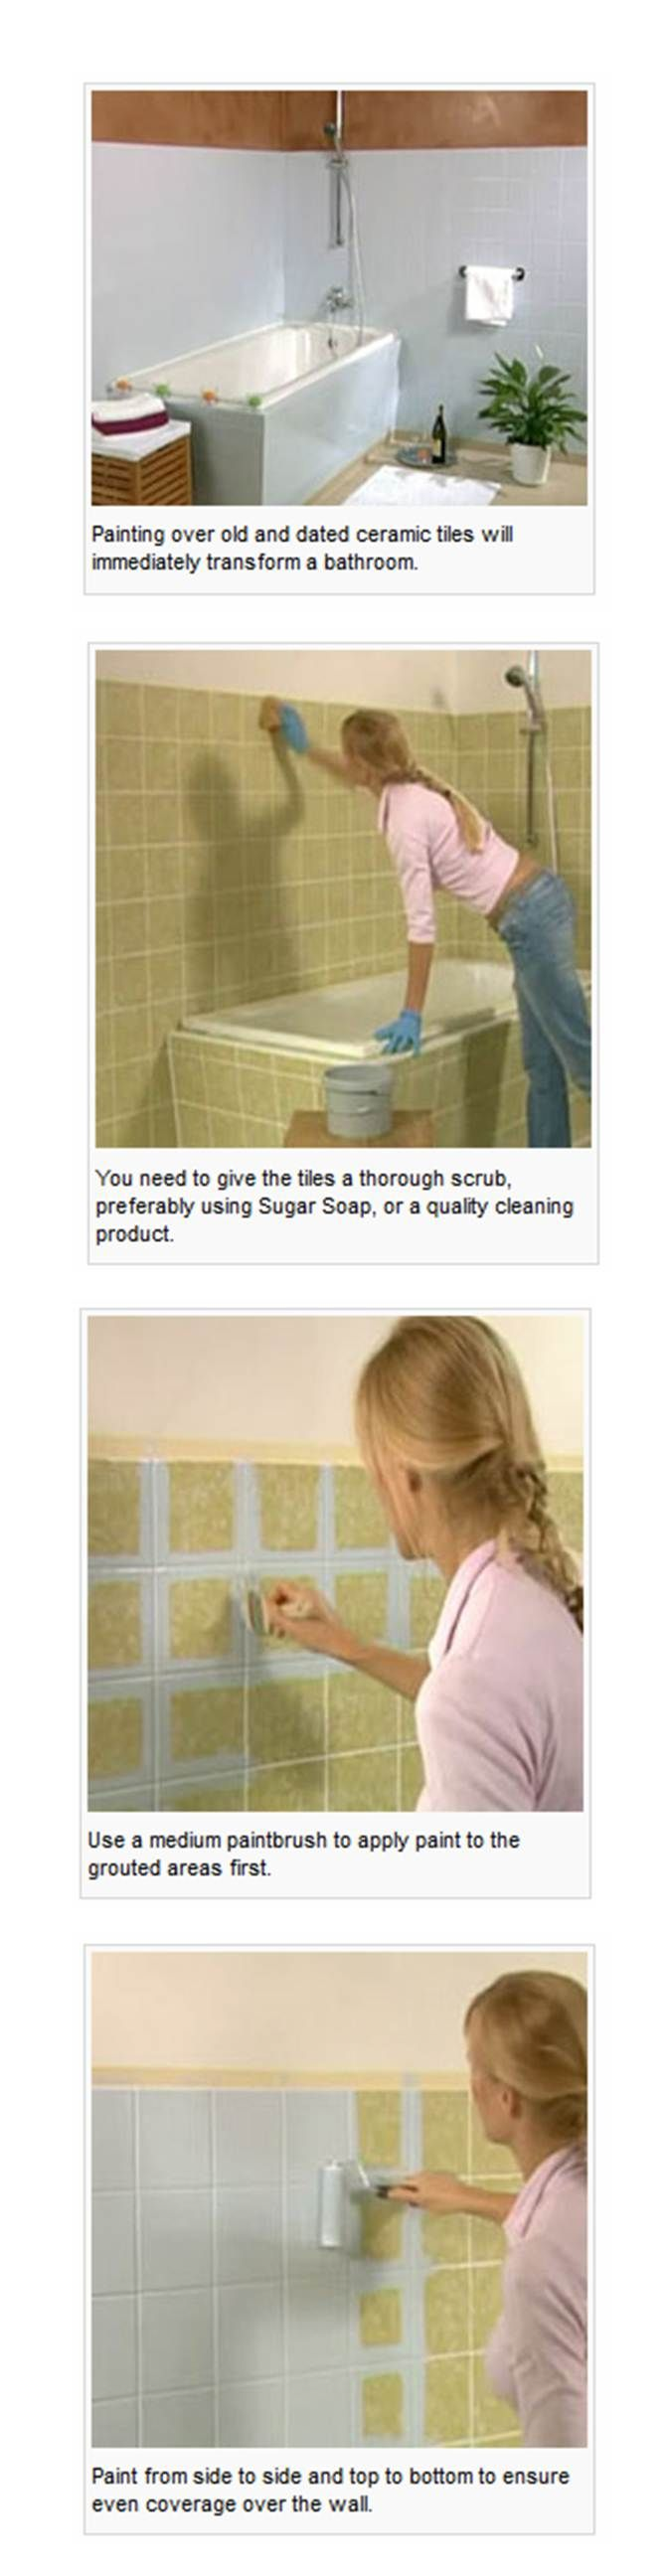 Painting Bathroom Tiles Must Use Special Paint Grout Must Be Cle 05 Craft Home Reno